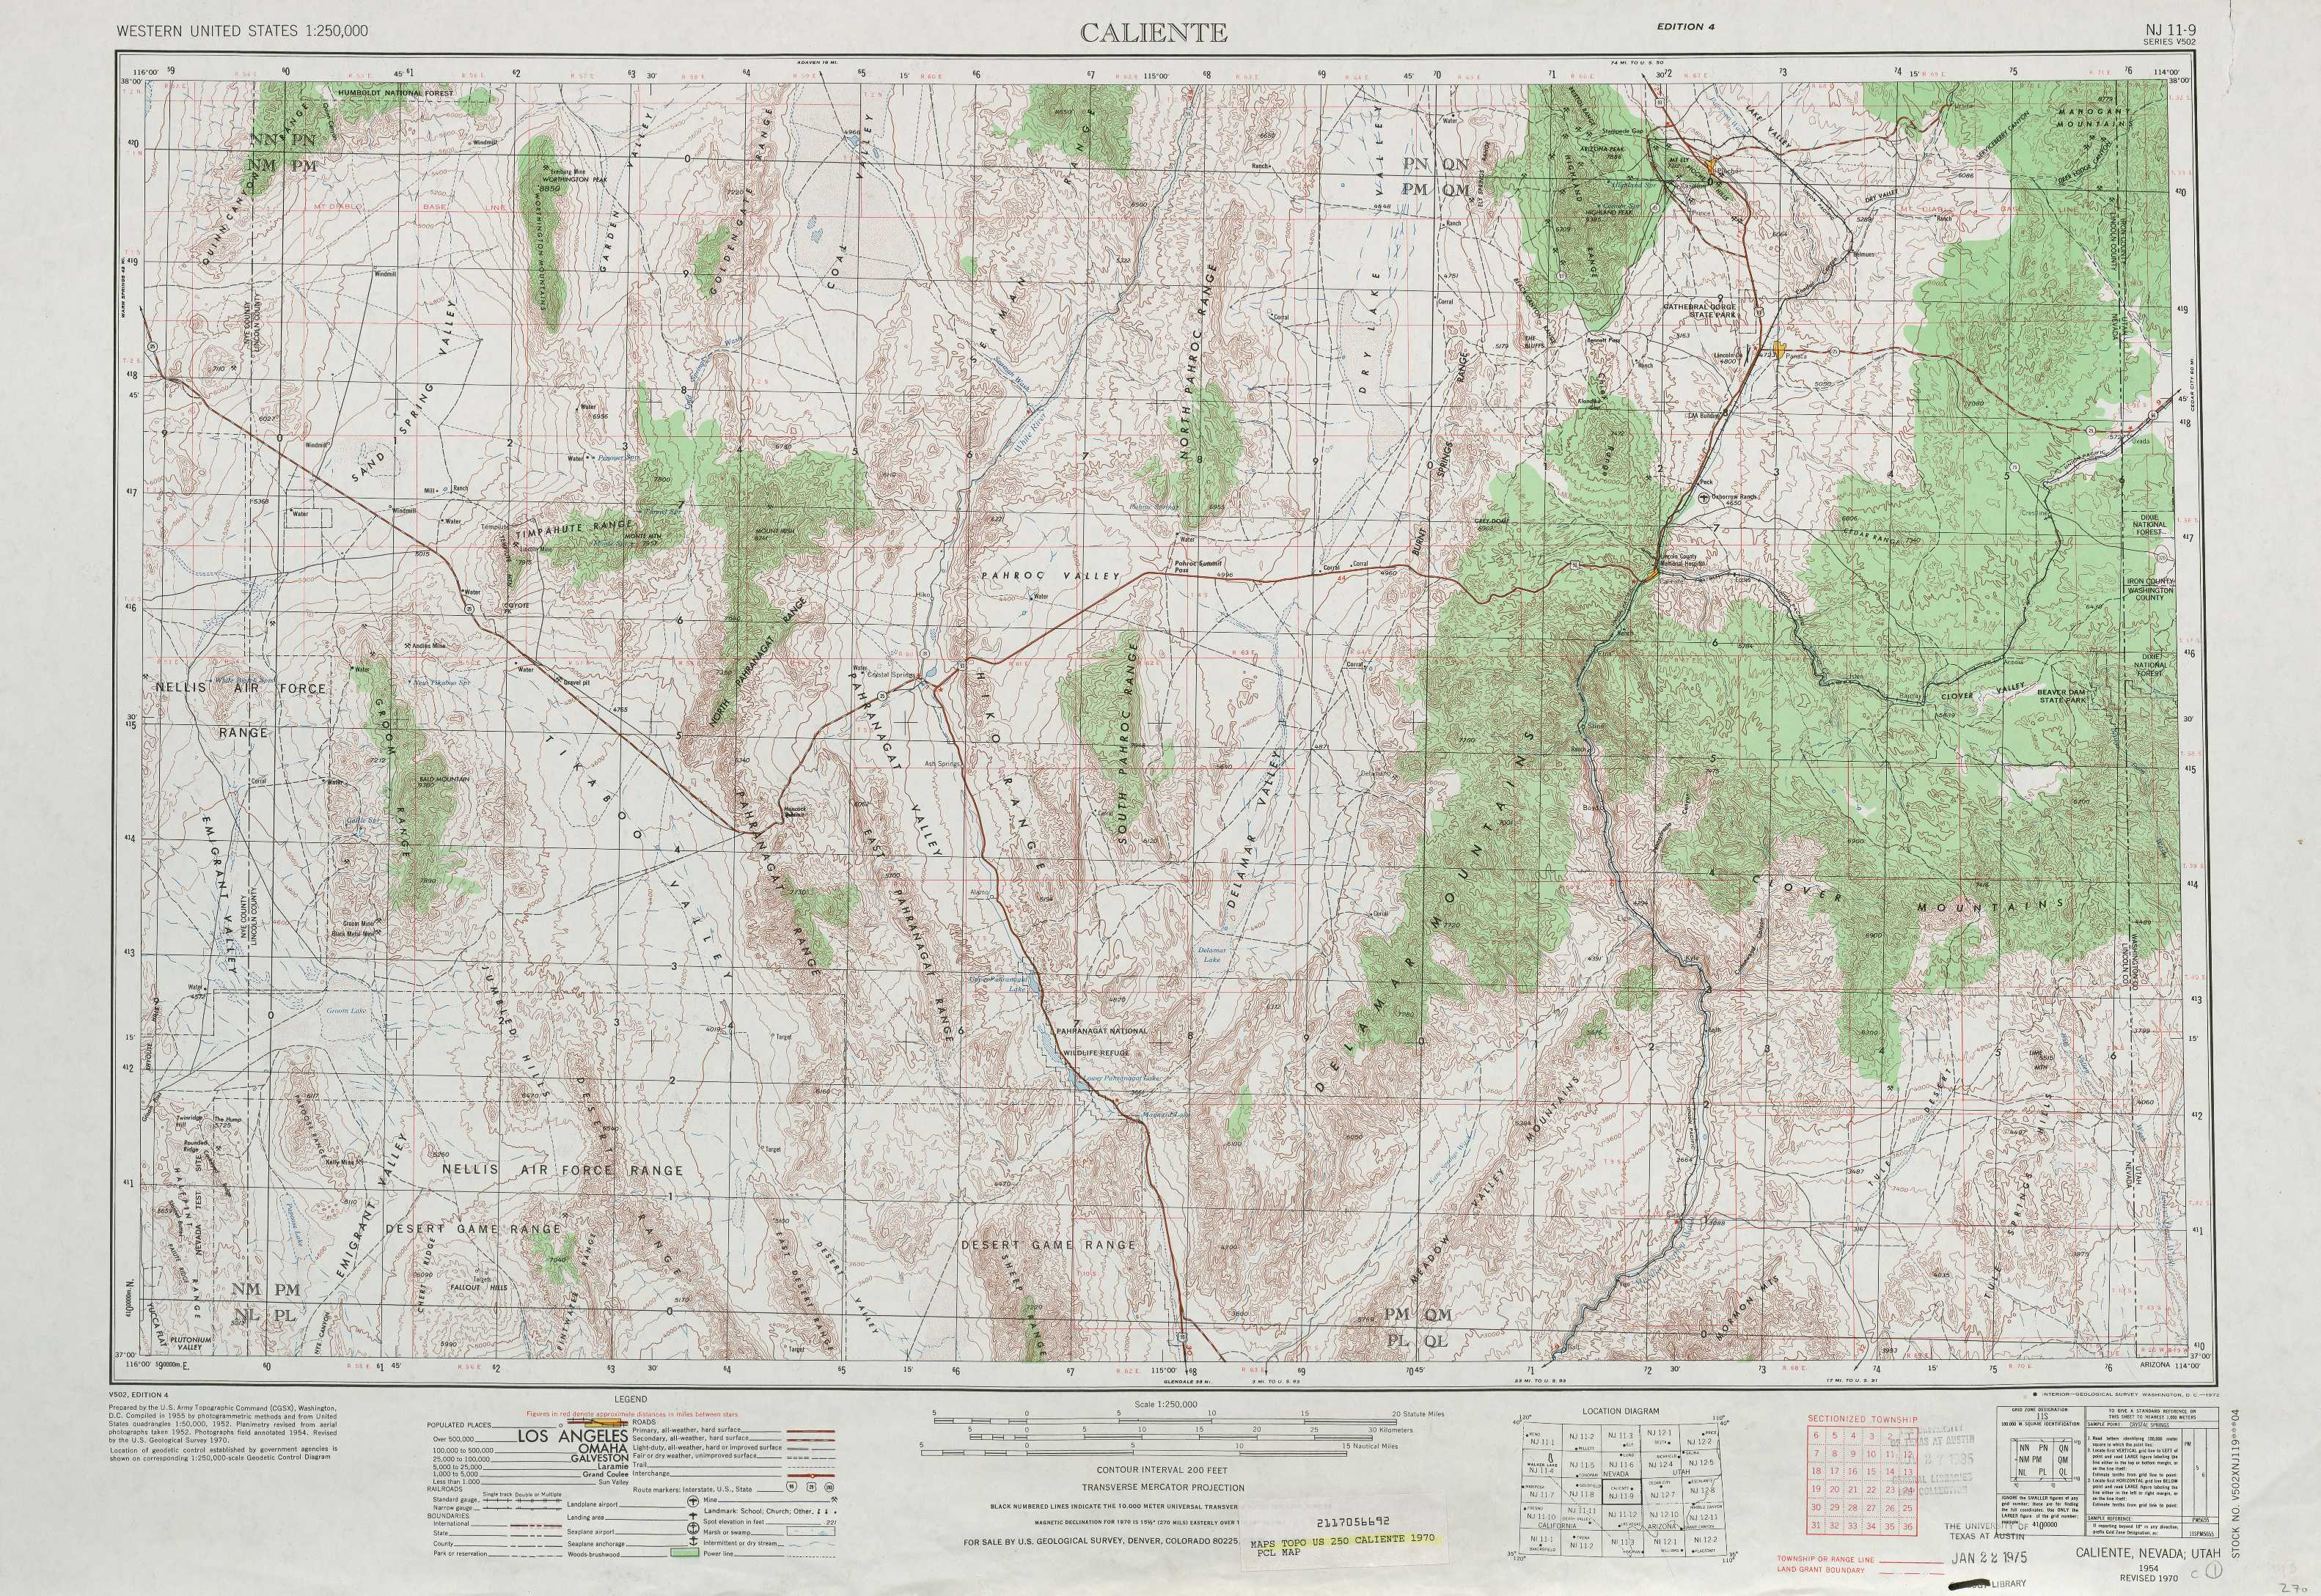 oregon topographic map with 37114a1 on Map Washington State as well Carte De L Espagne moreover Mesh info together with Garmin mapsource De en besides Rhode Island.